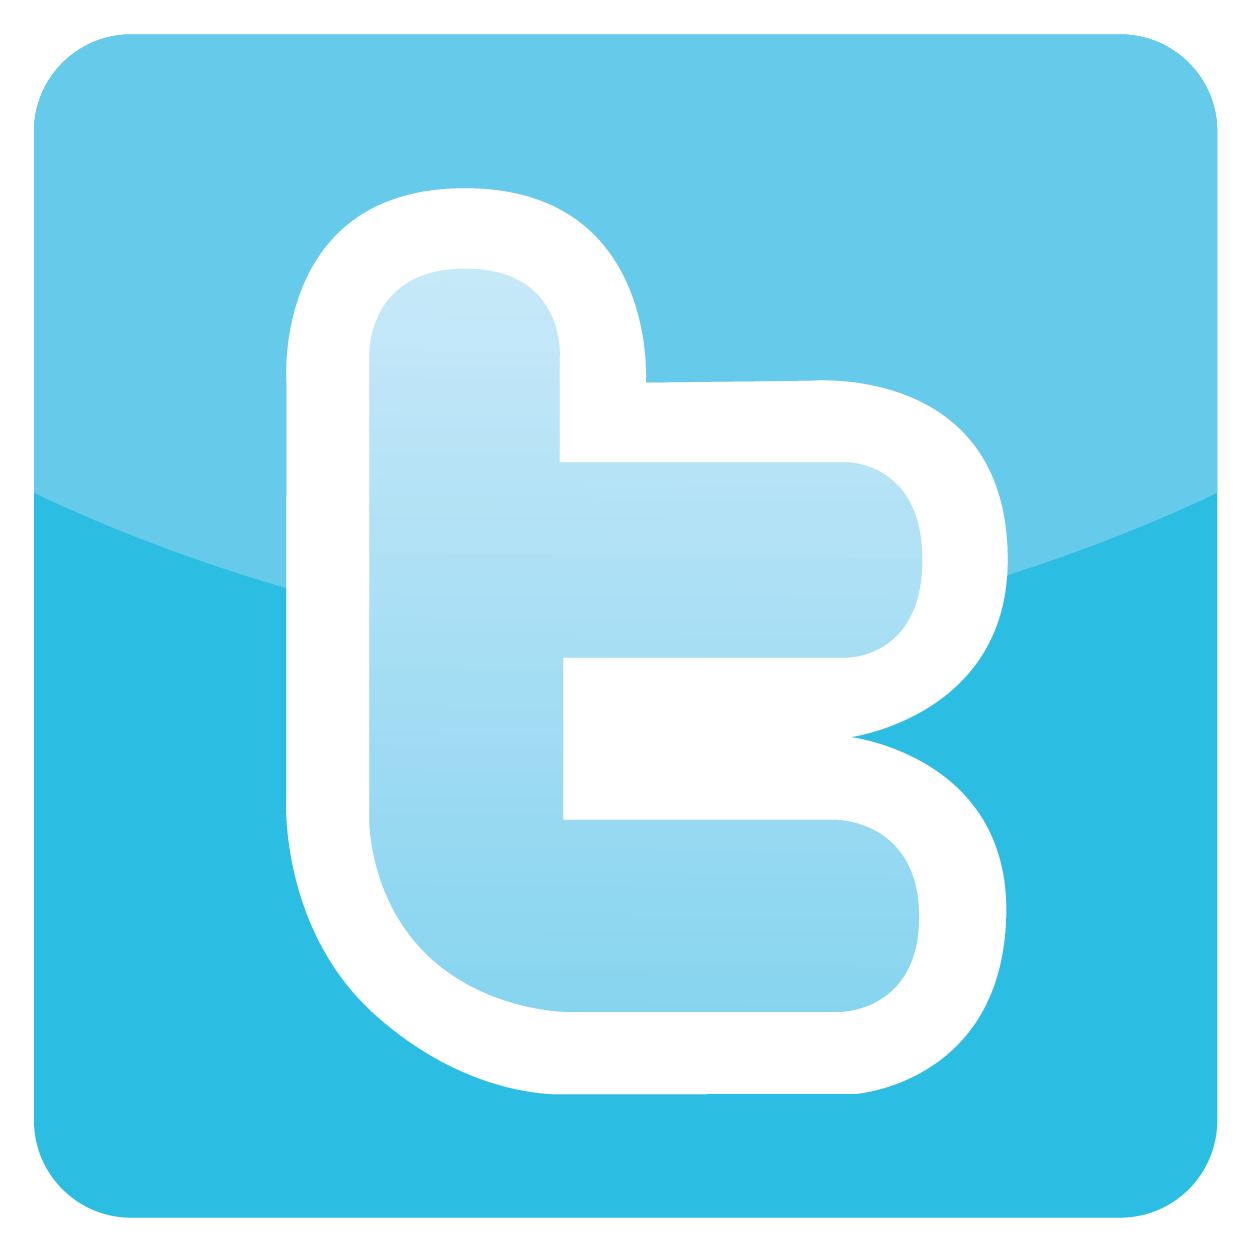 twitter-logo-icon-by-jon-bennallick-02